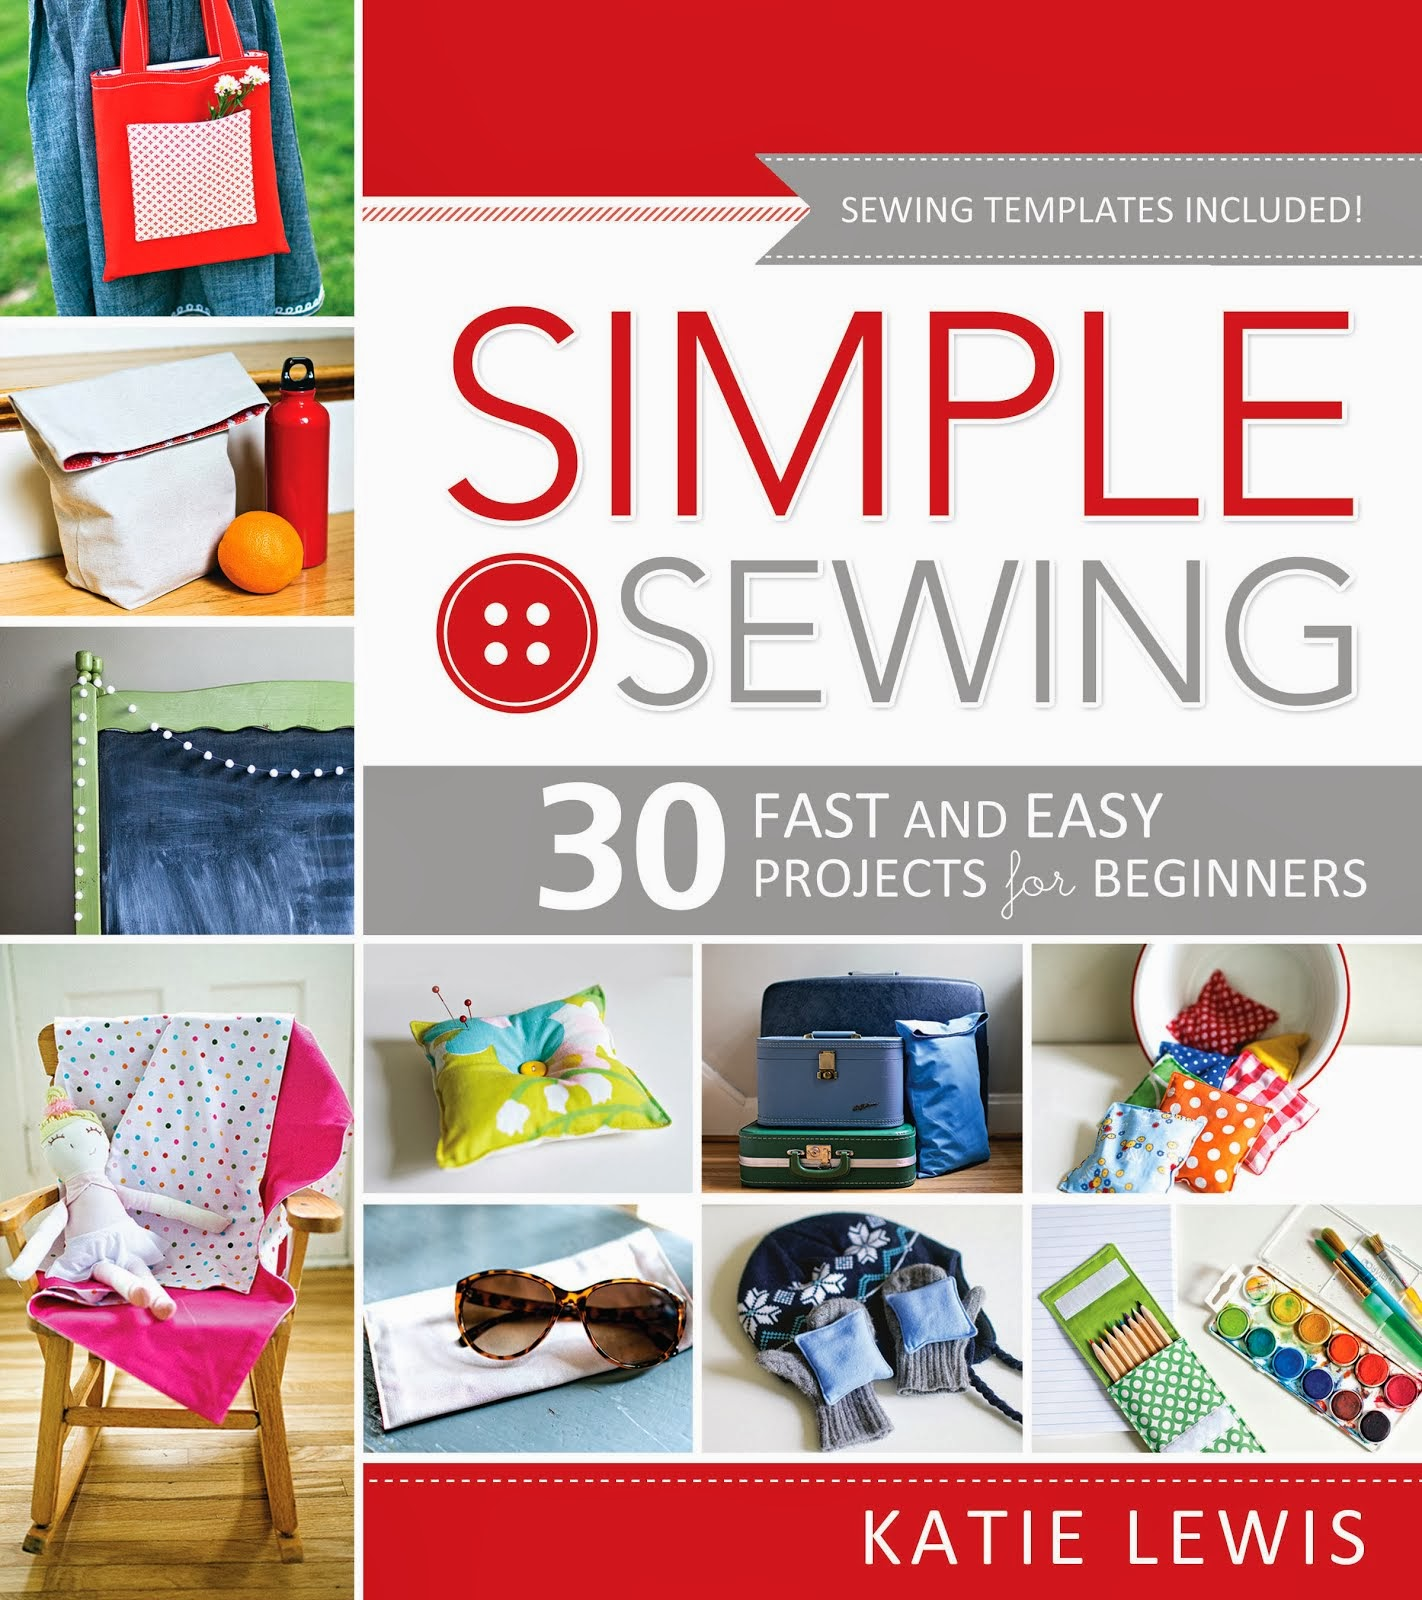 Simple Sewing